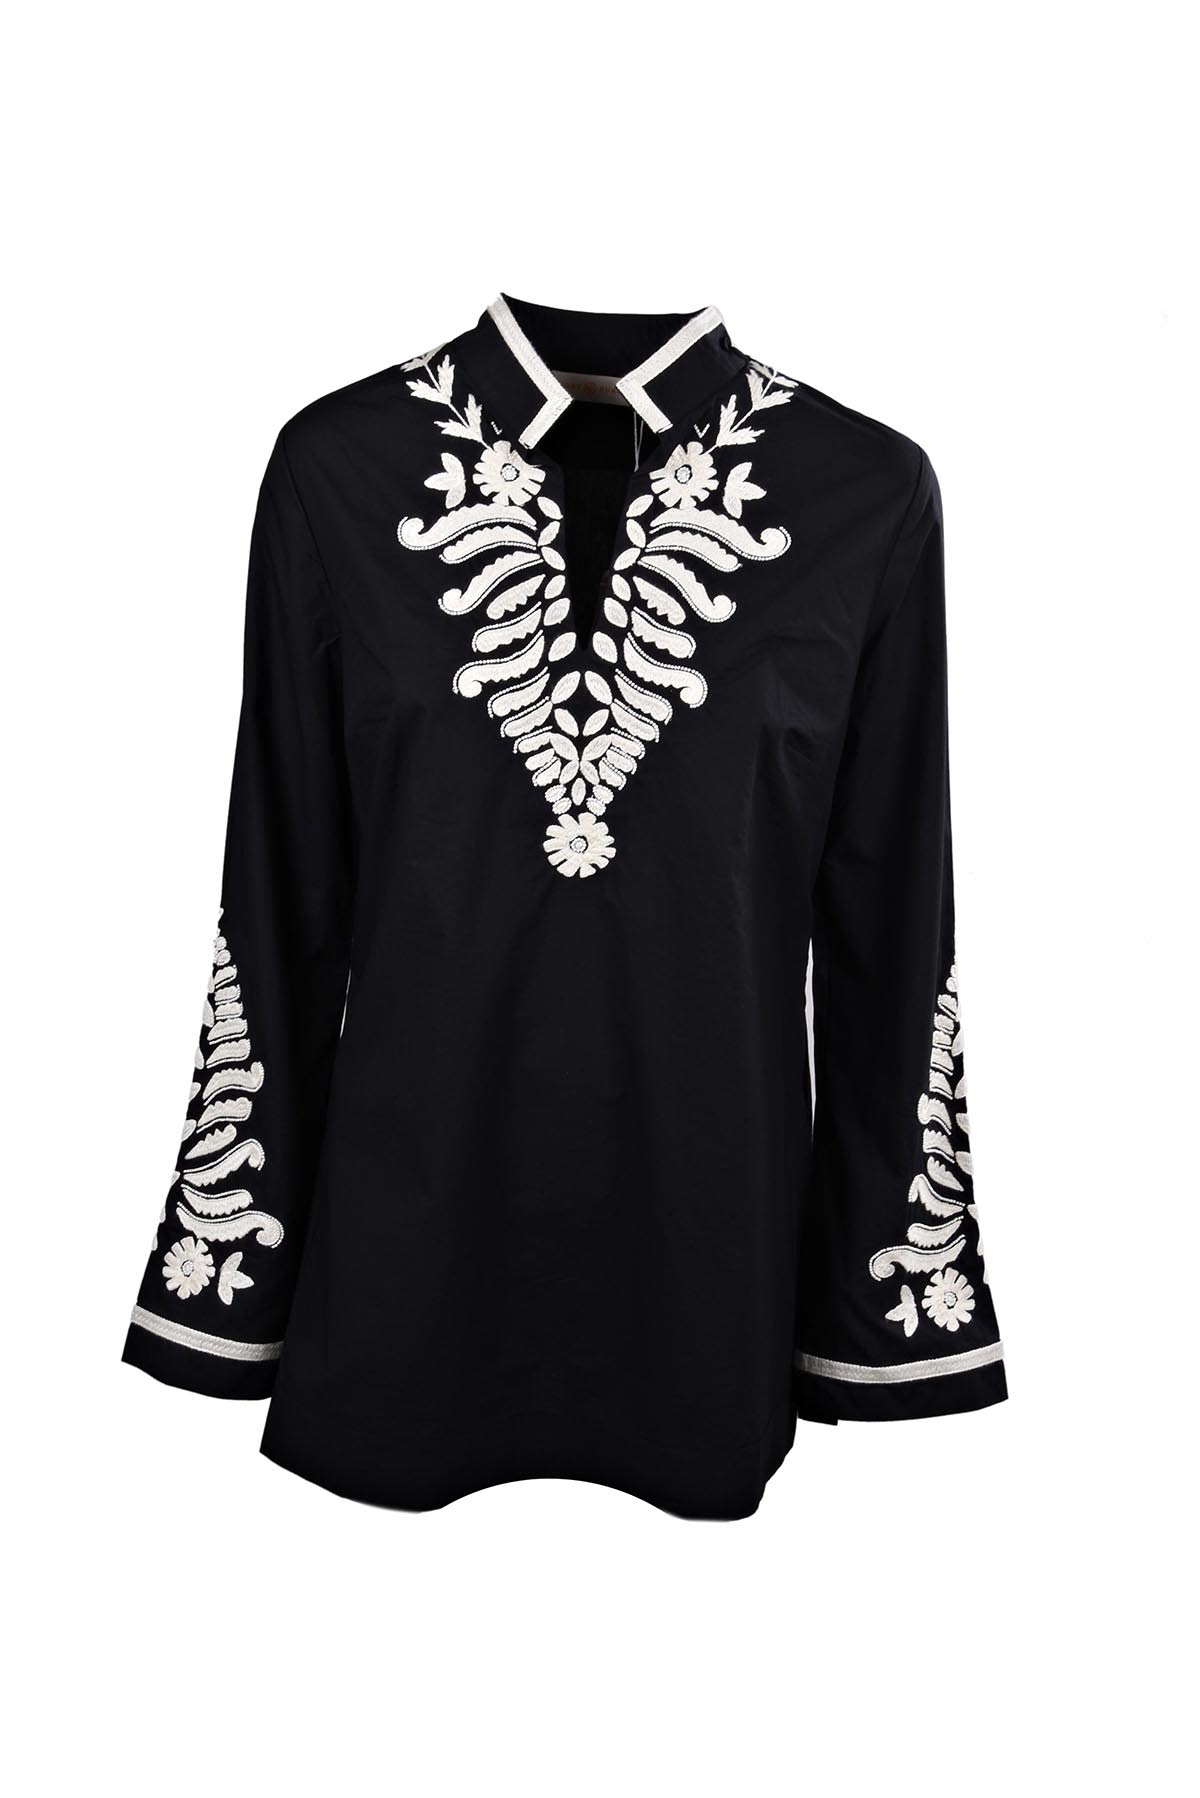 Tory Burch Embroidered Tory Tunic